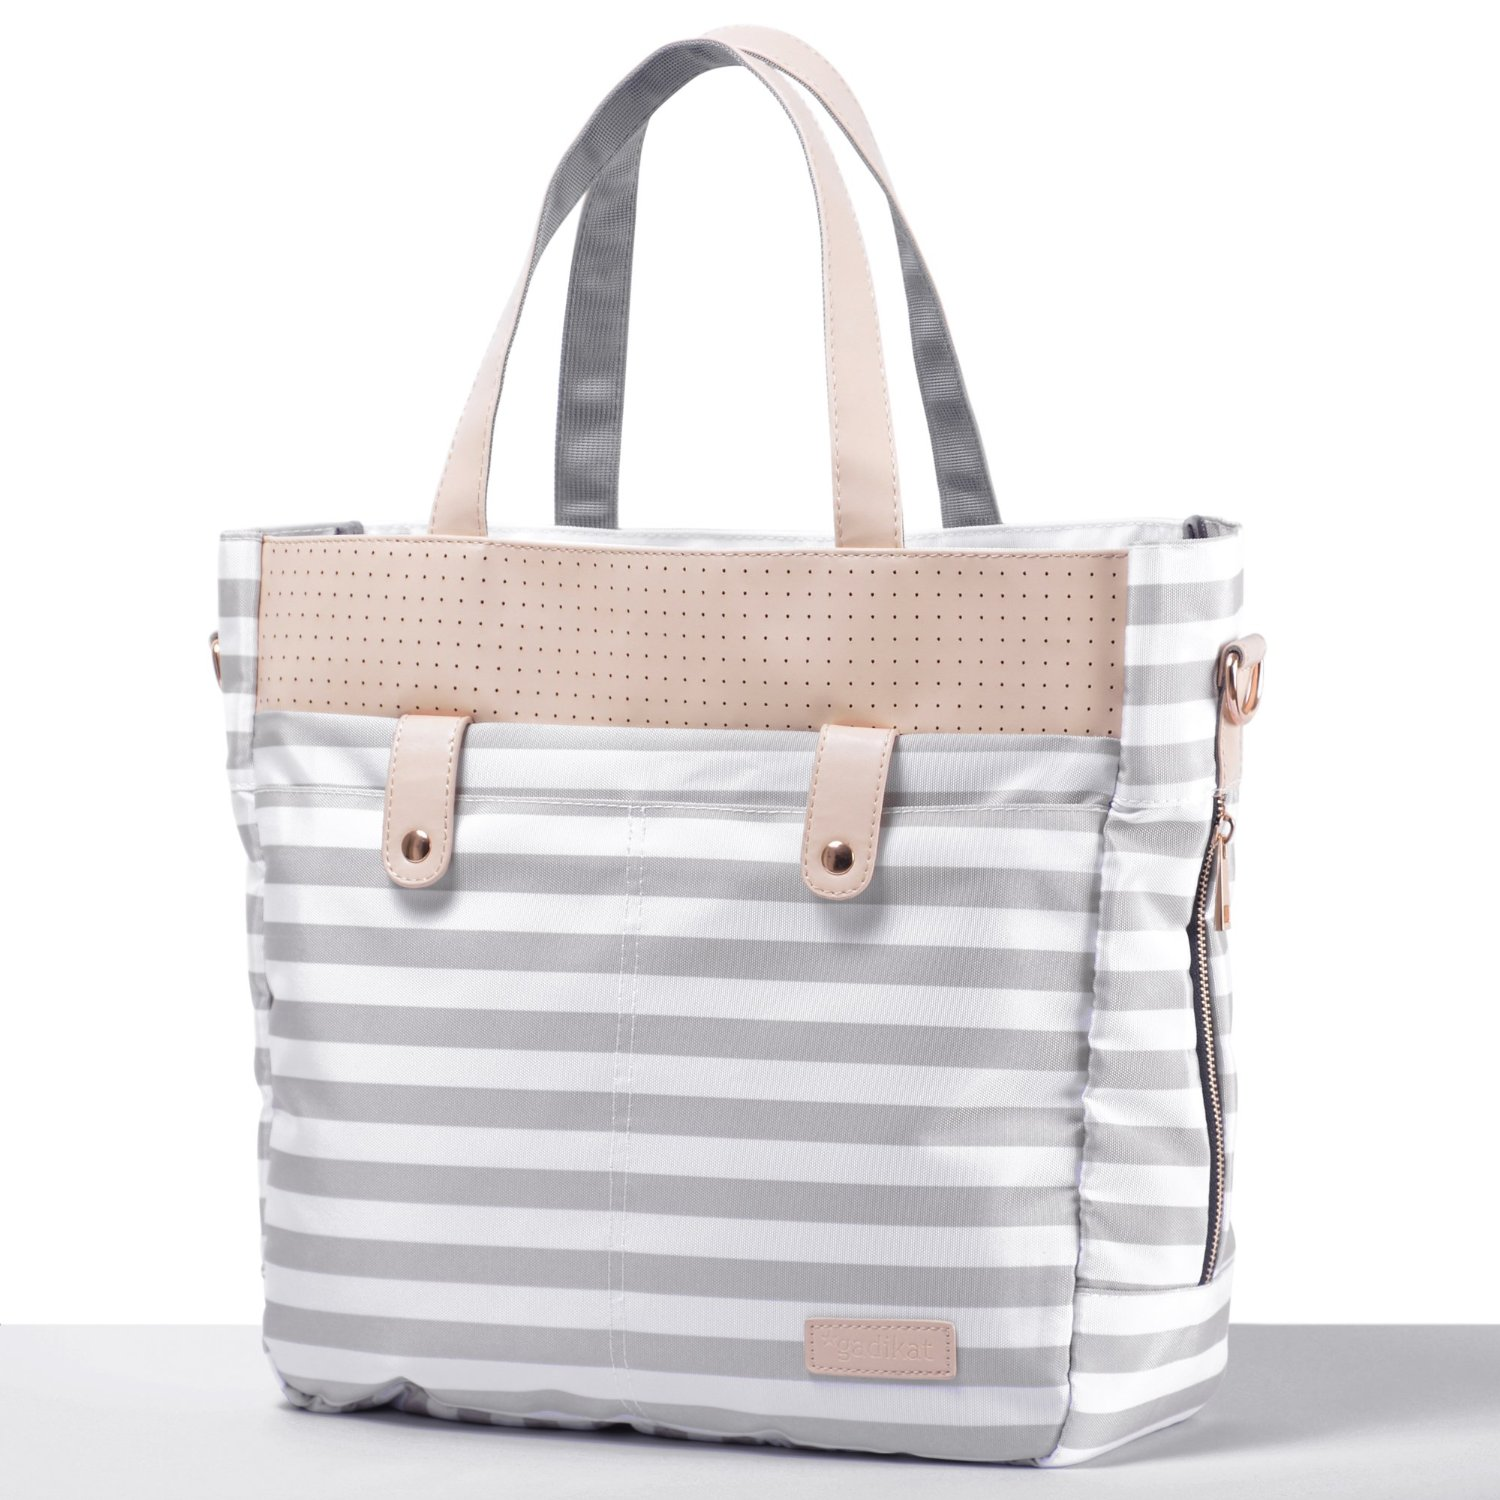 Everyday diaper bag stylish